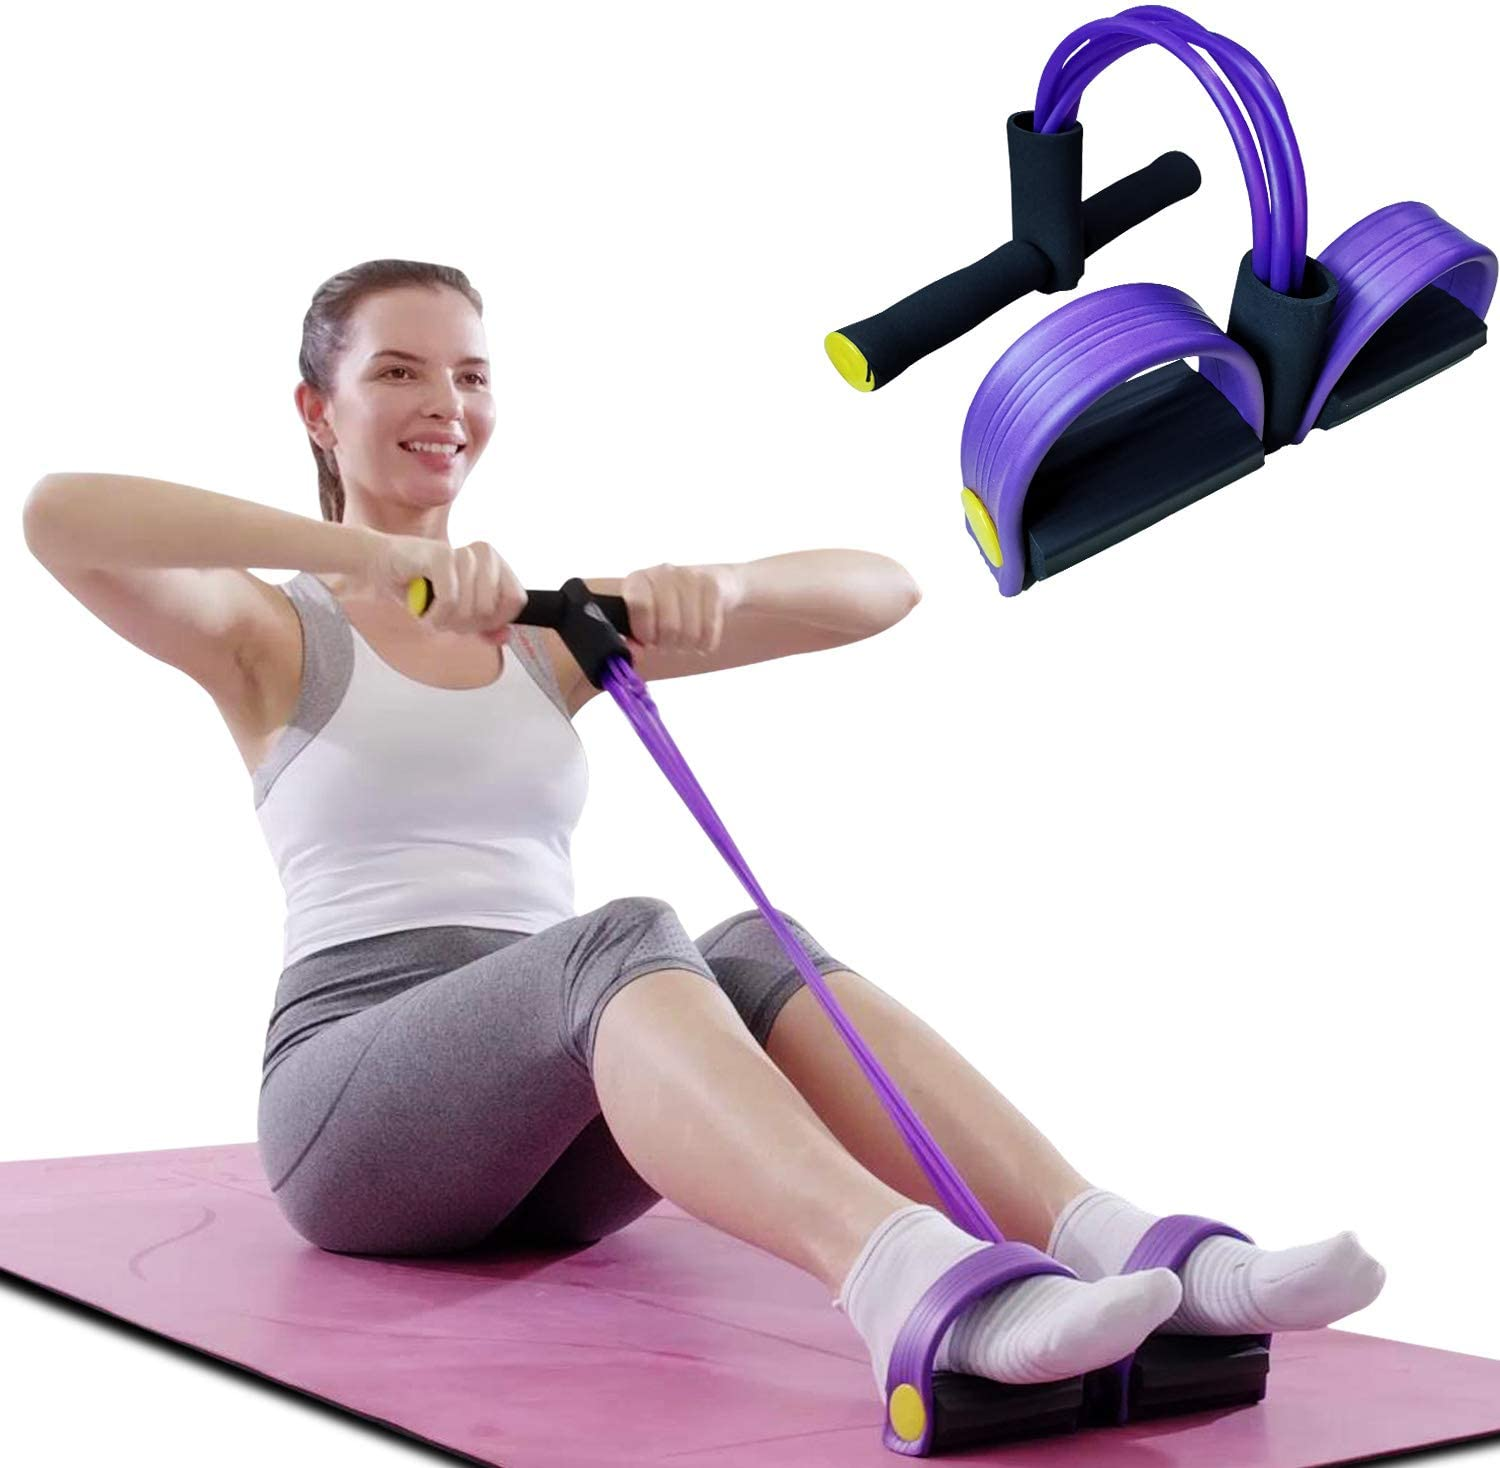 Amazon Com Harison Pedal Resistance Band Fitness Bodybuilding Expander Pull Rope For Core Ab Exercise Legs Yoga Slimming Training Workouts And Home Gym Stretching Training Sports Outdoors